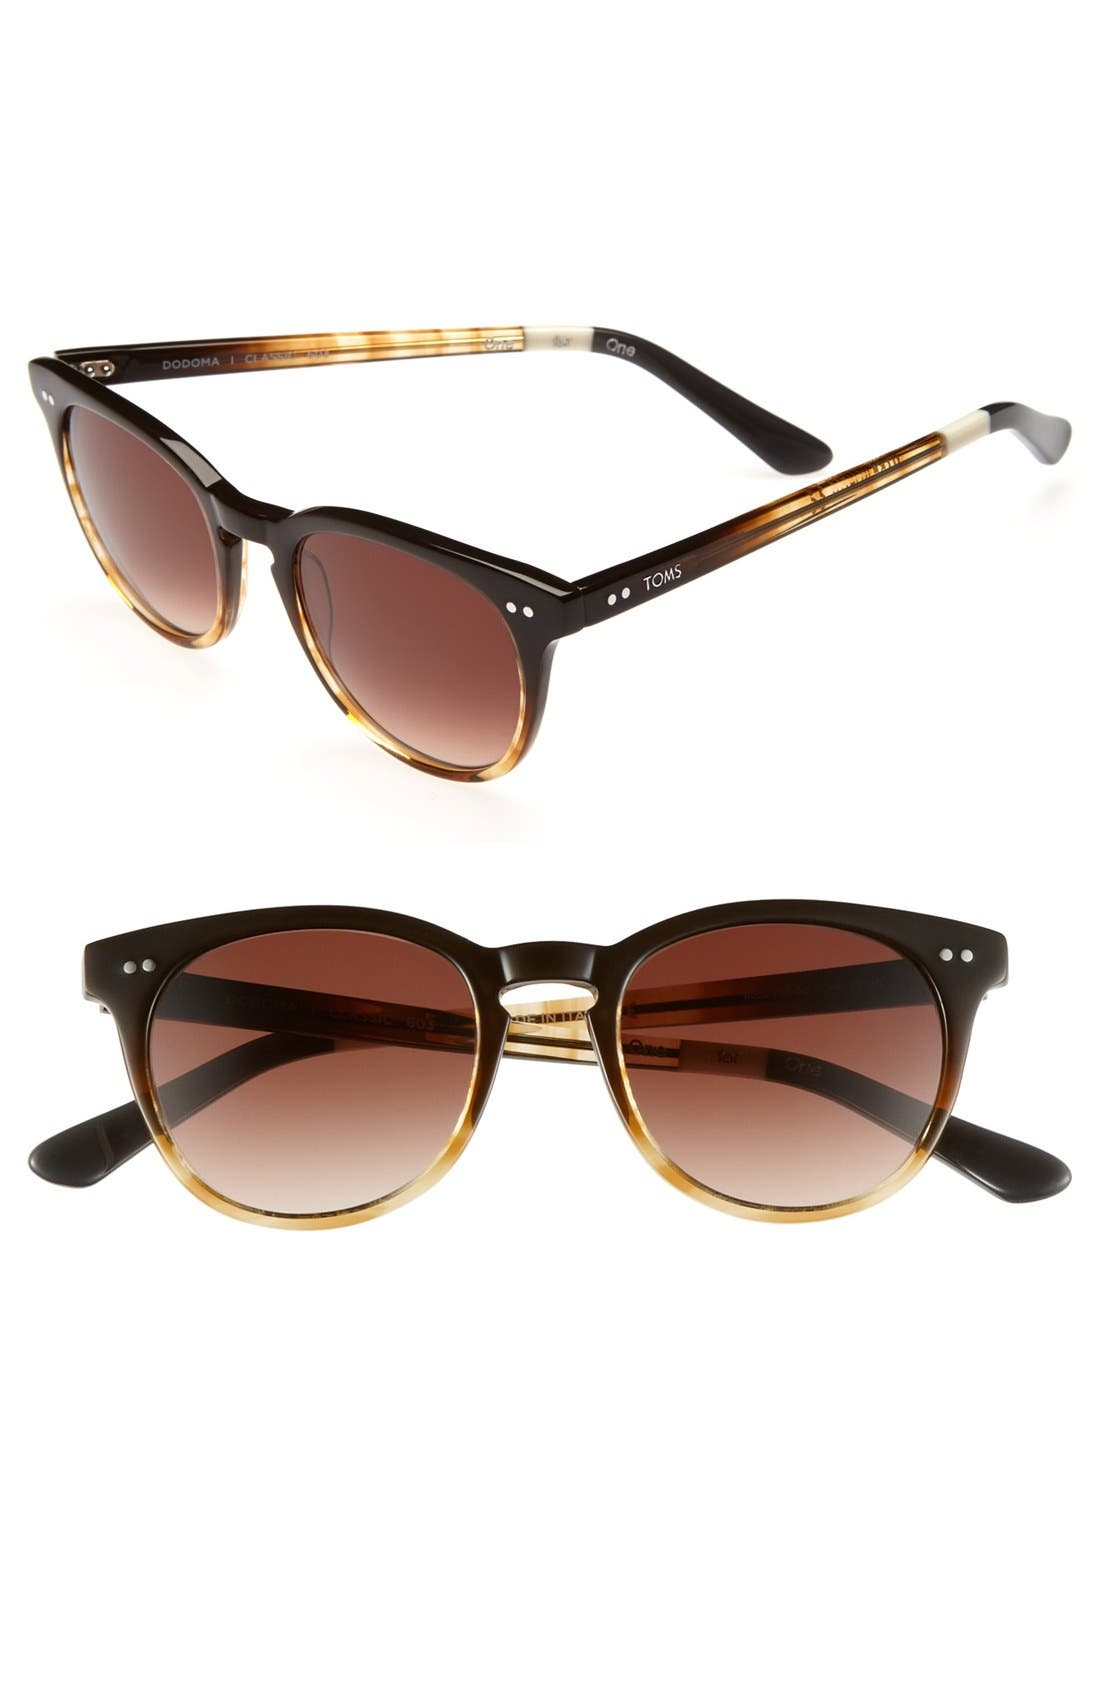 Alternate Image 1 Selected - TOMS 'Dodoma' 48mm Vintage Keyhole Sunglasses